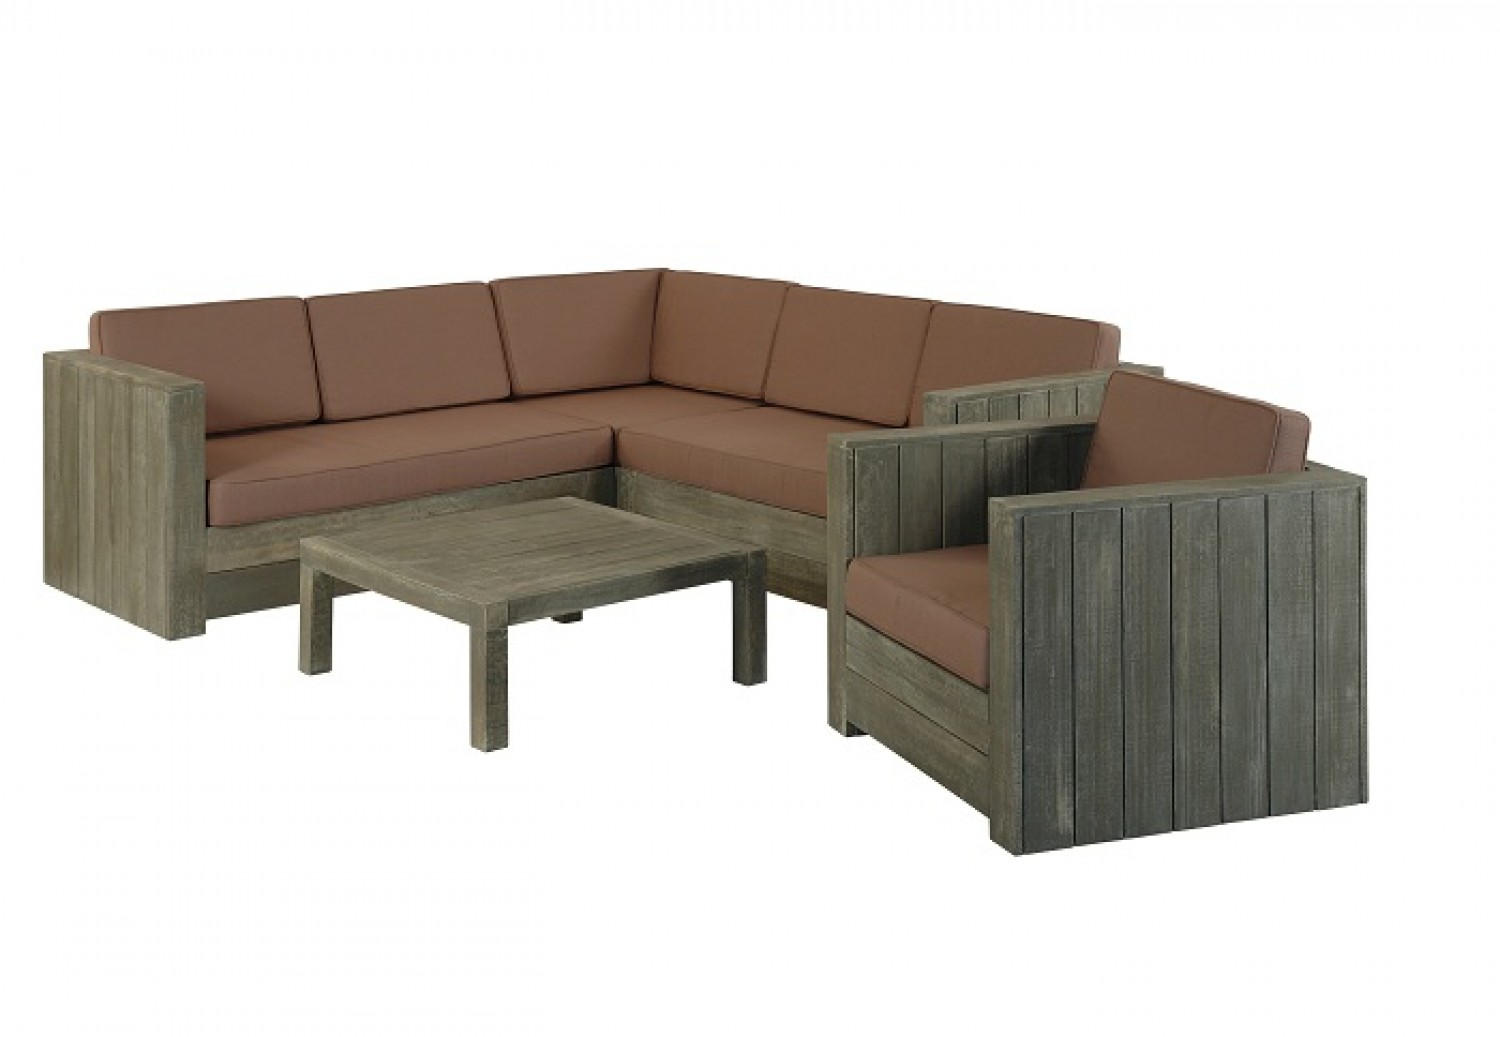 loungegruppe solit r mit polster sand batavia gartenm bel onlineshop f r hochwertige gartenm be. Black Bedroom Furniture Sets. Home Design Ideas